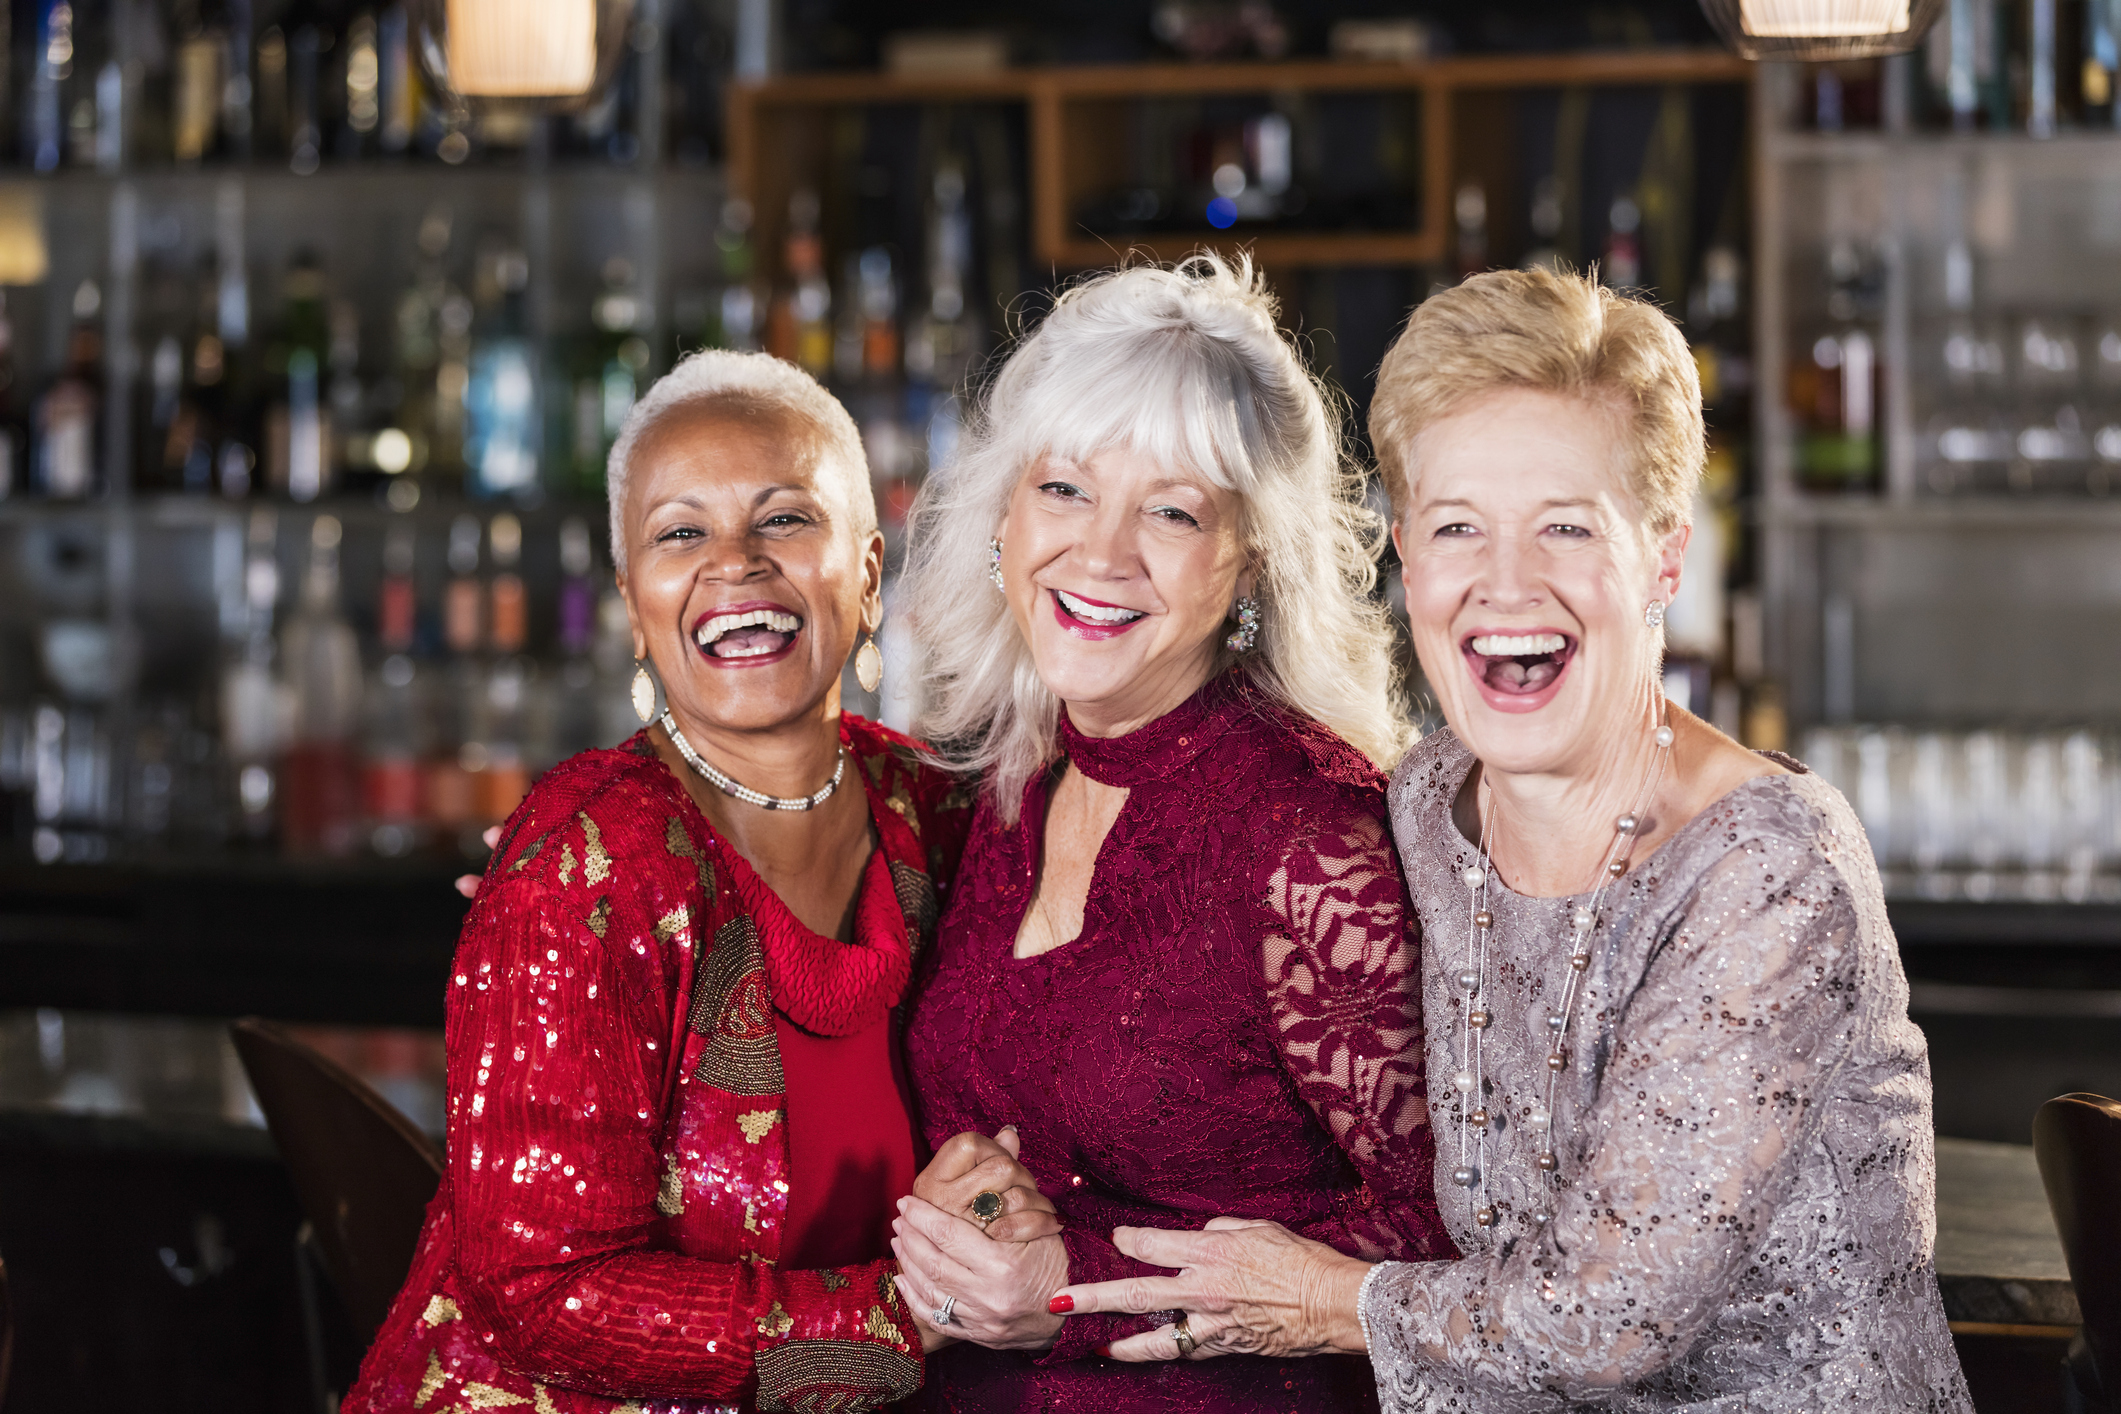 Three older women laughing dressed in cocktail attire in a bar.